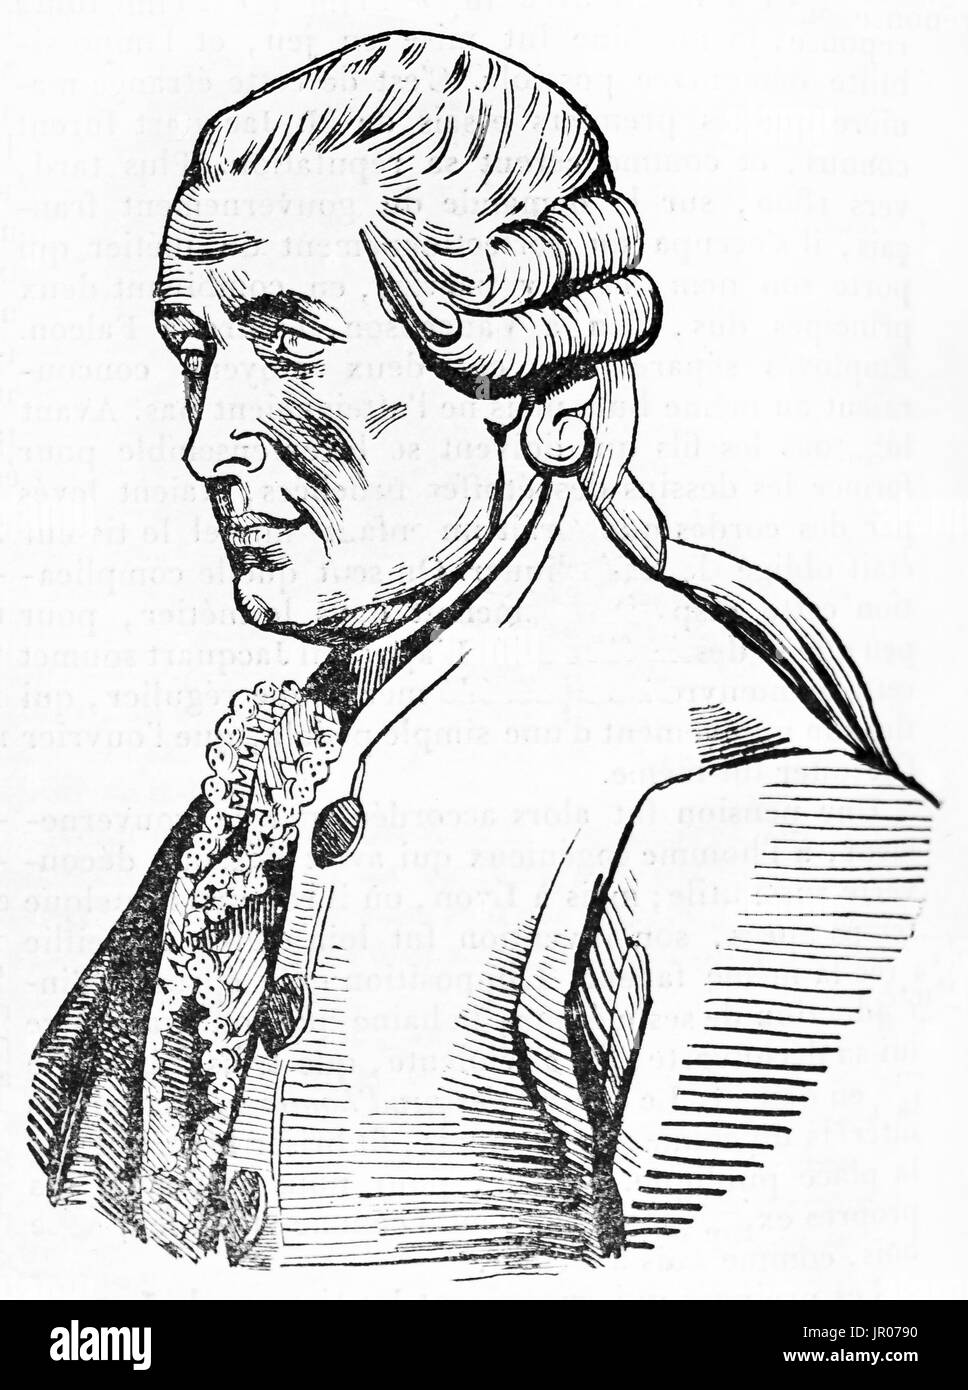 Old engraved portrait of Jacques de Vaucanson (1702 – 1789), French inventor. By unidentified author, published - Stock Image